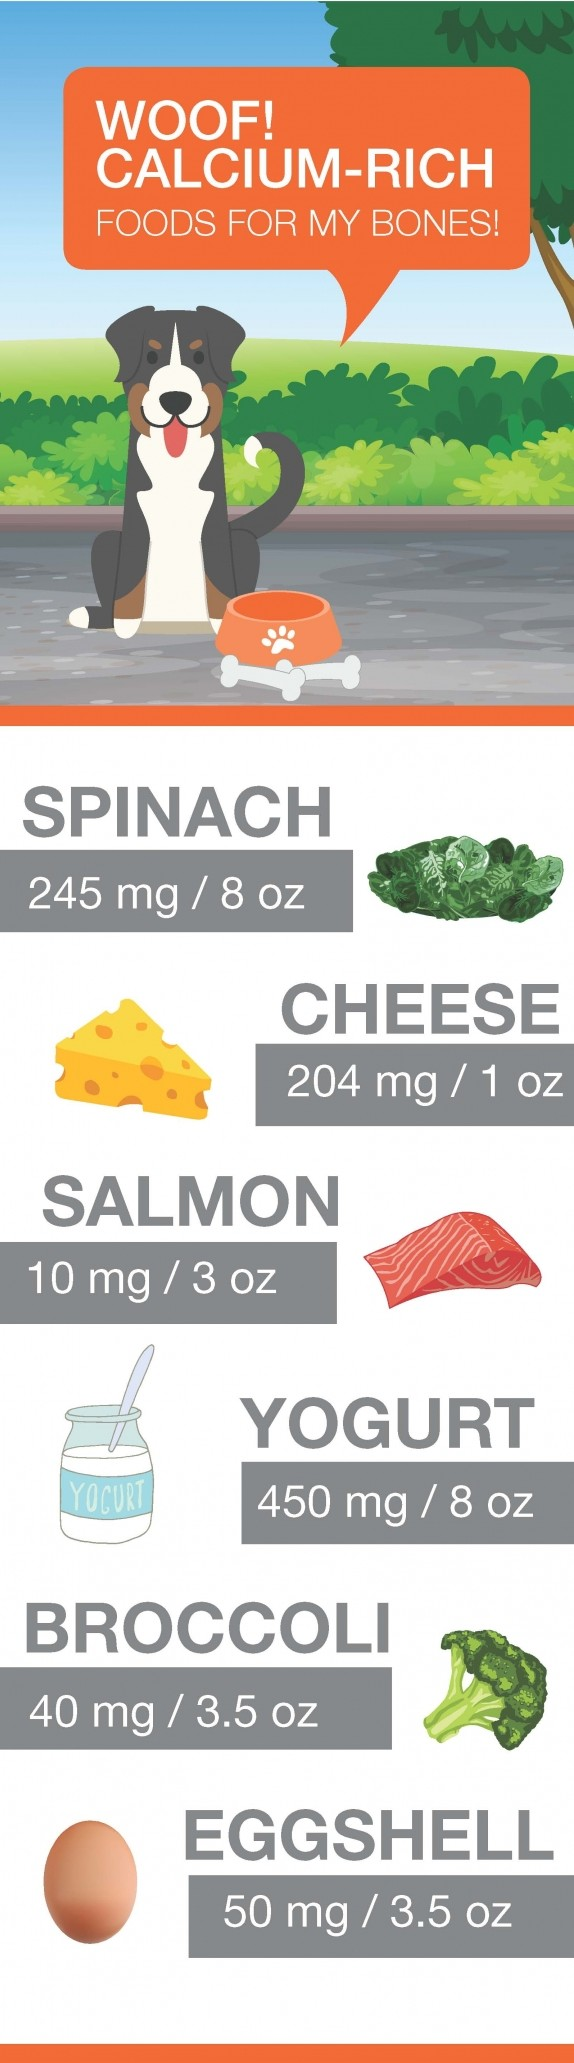 Calcium Food Sources For Dogs